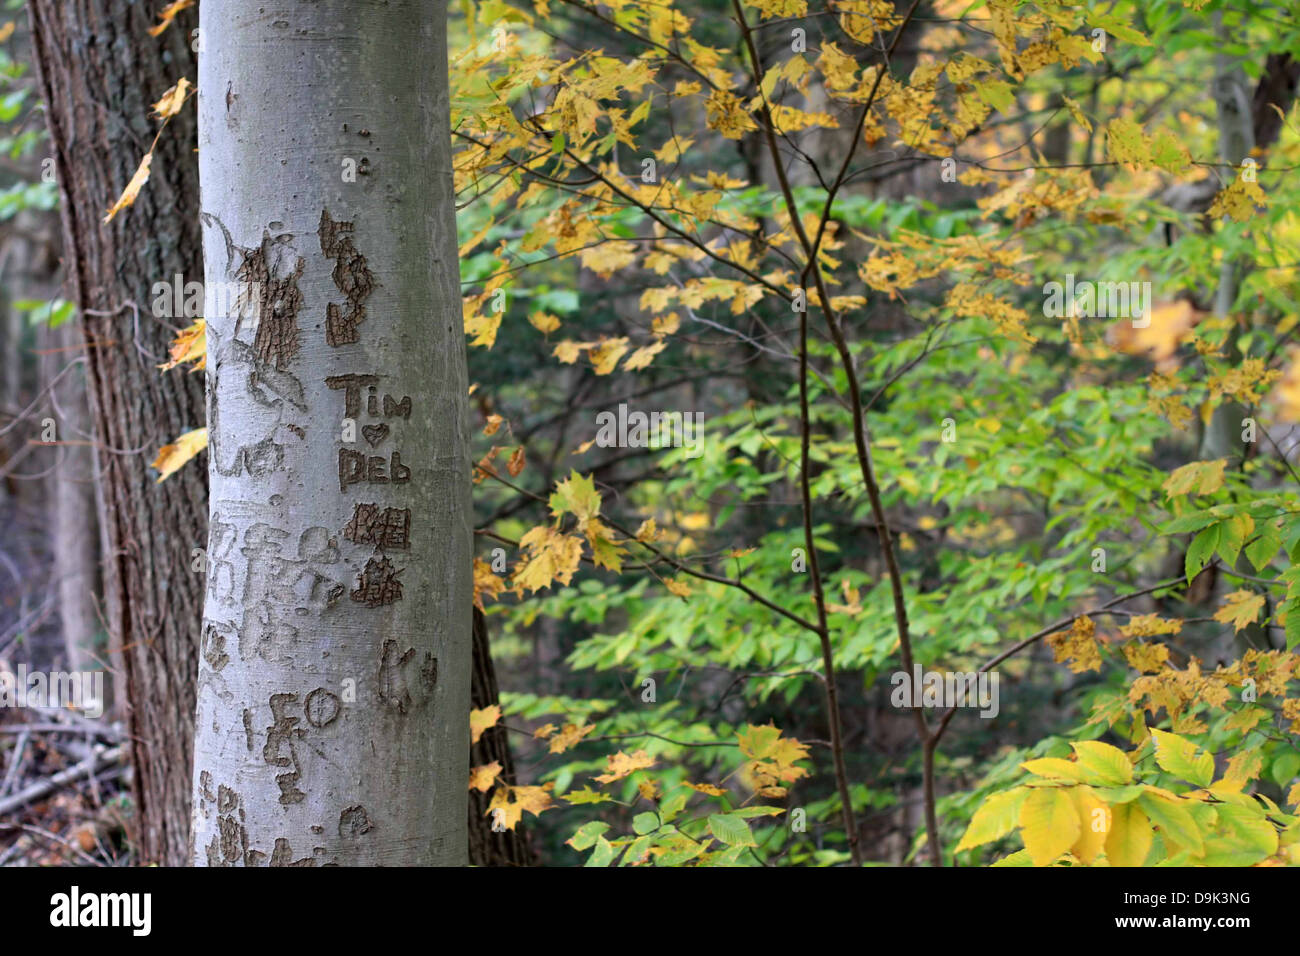 fall autumn leaf leaves tree trunk bark names carve heart love Tim Deb lovers sweethearts branch branches horizontal - Stock Image